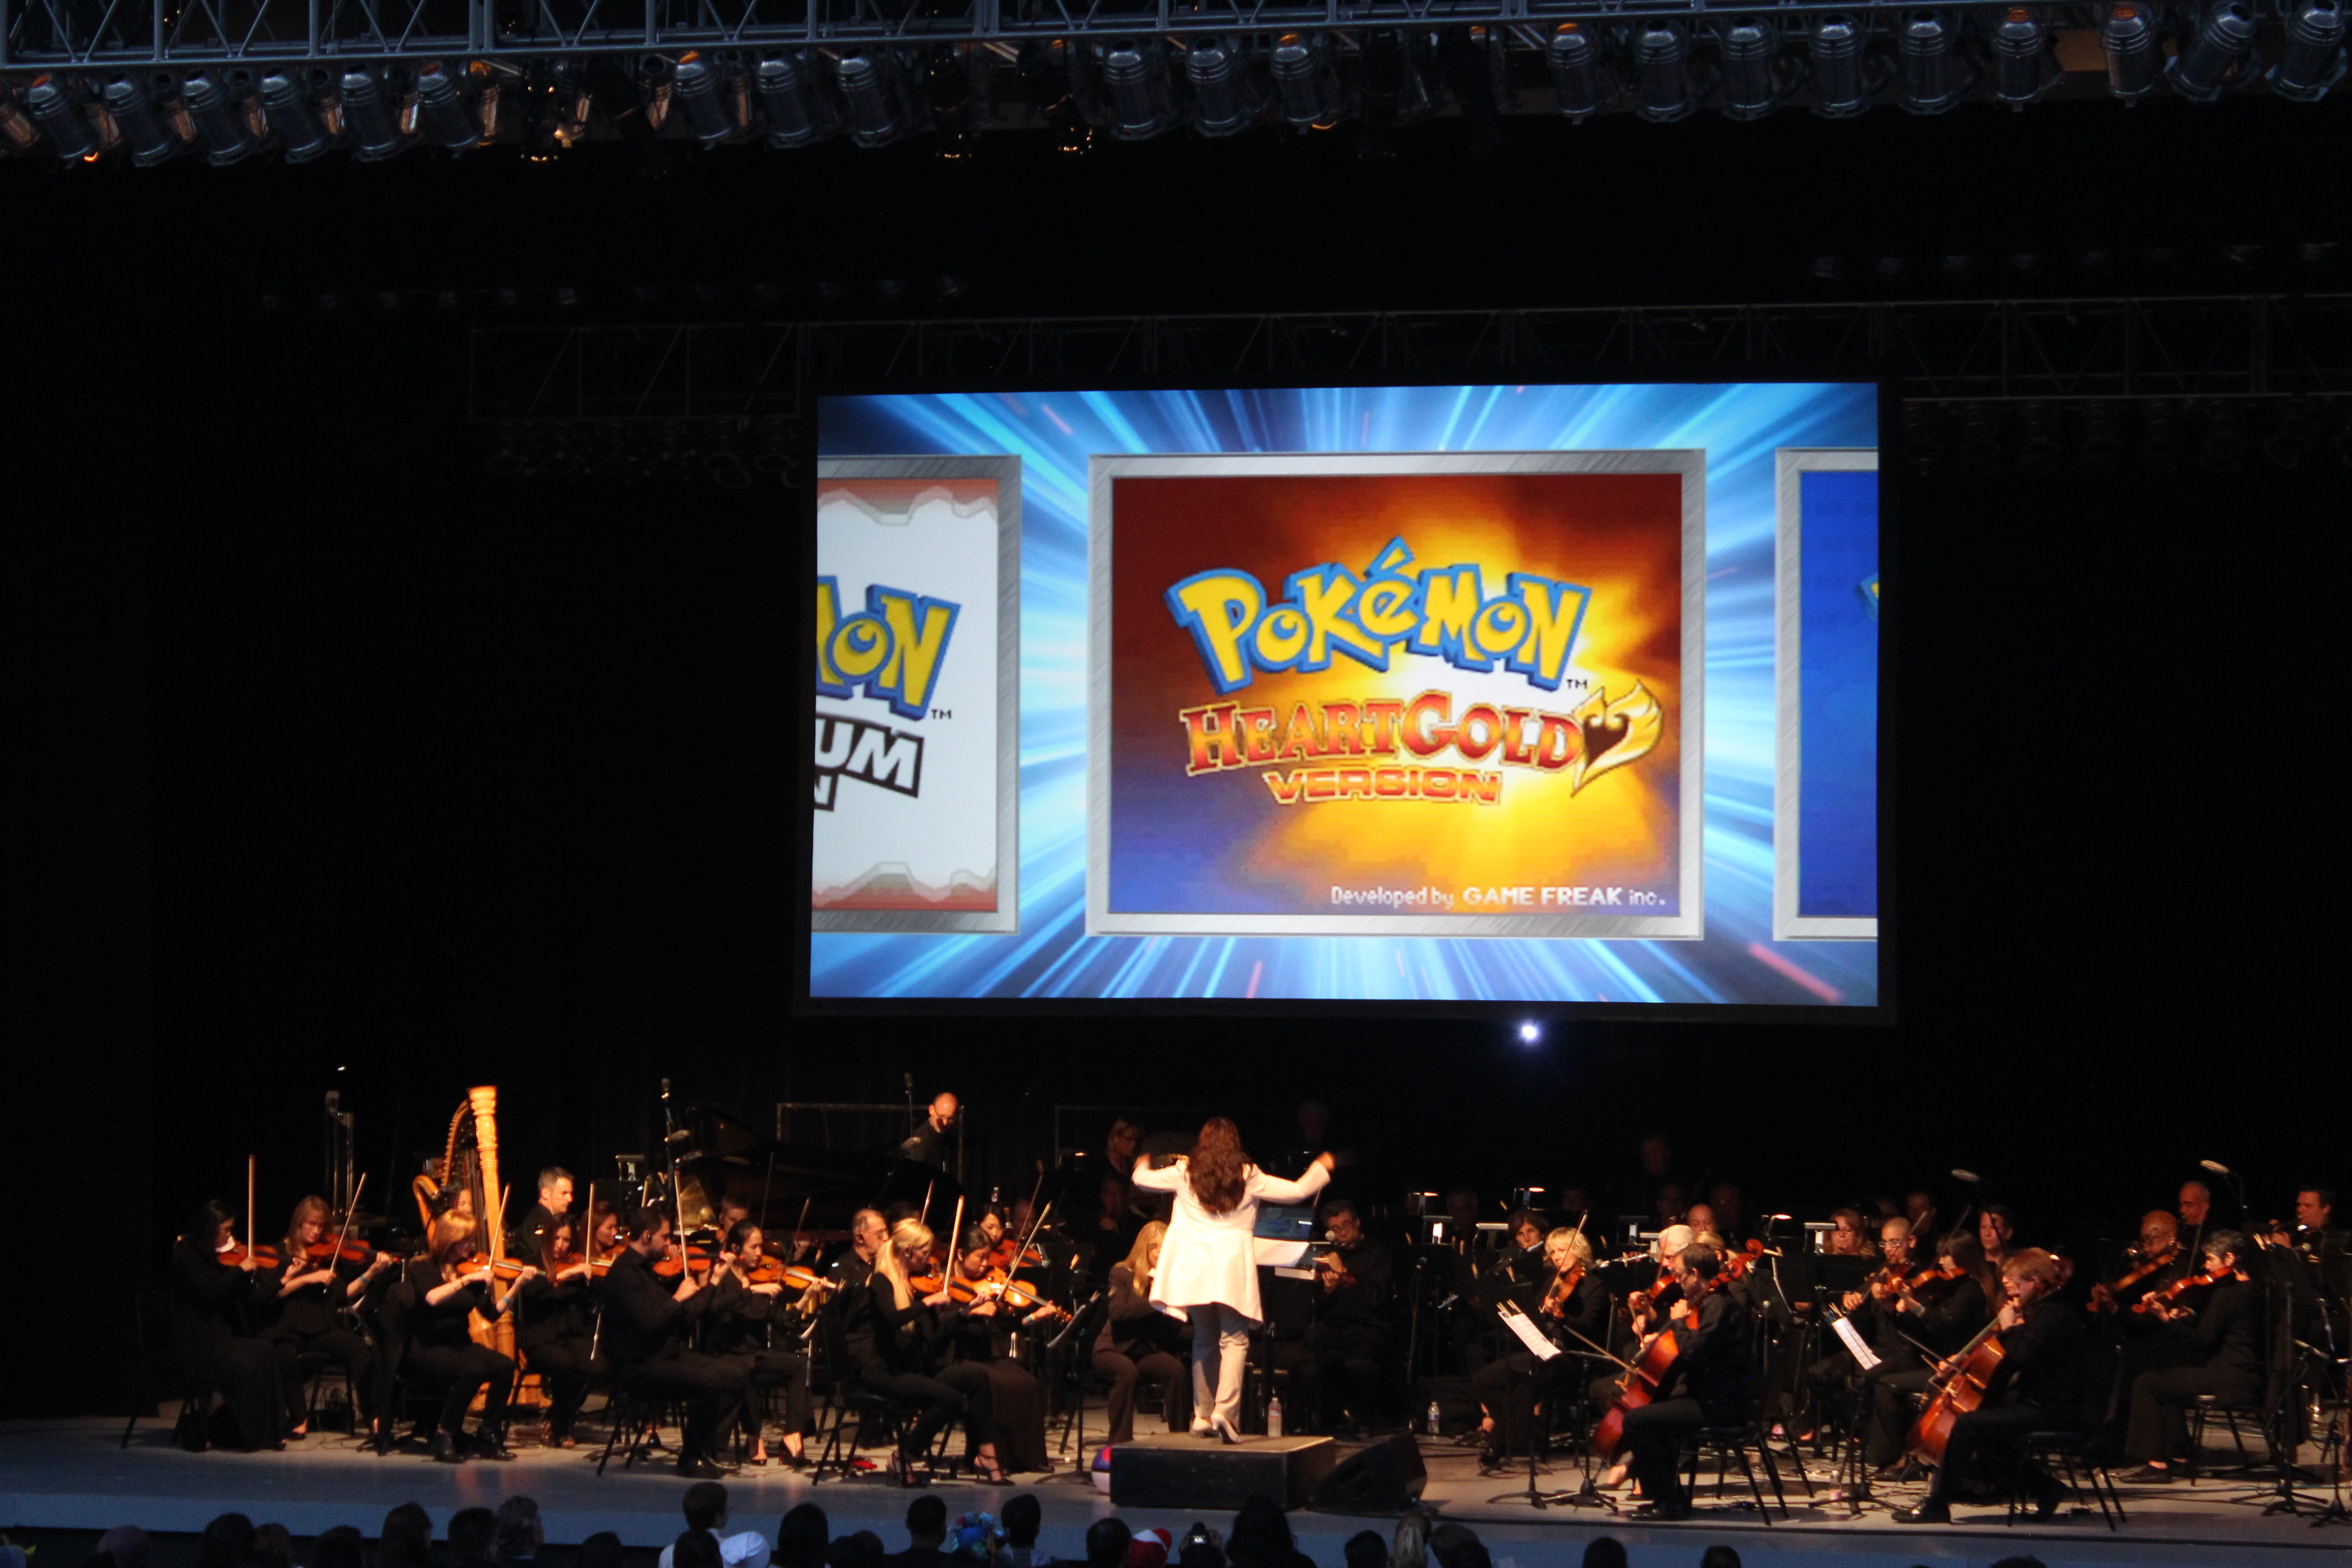 pokemonsymphonyinterview 1.3